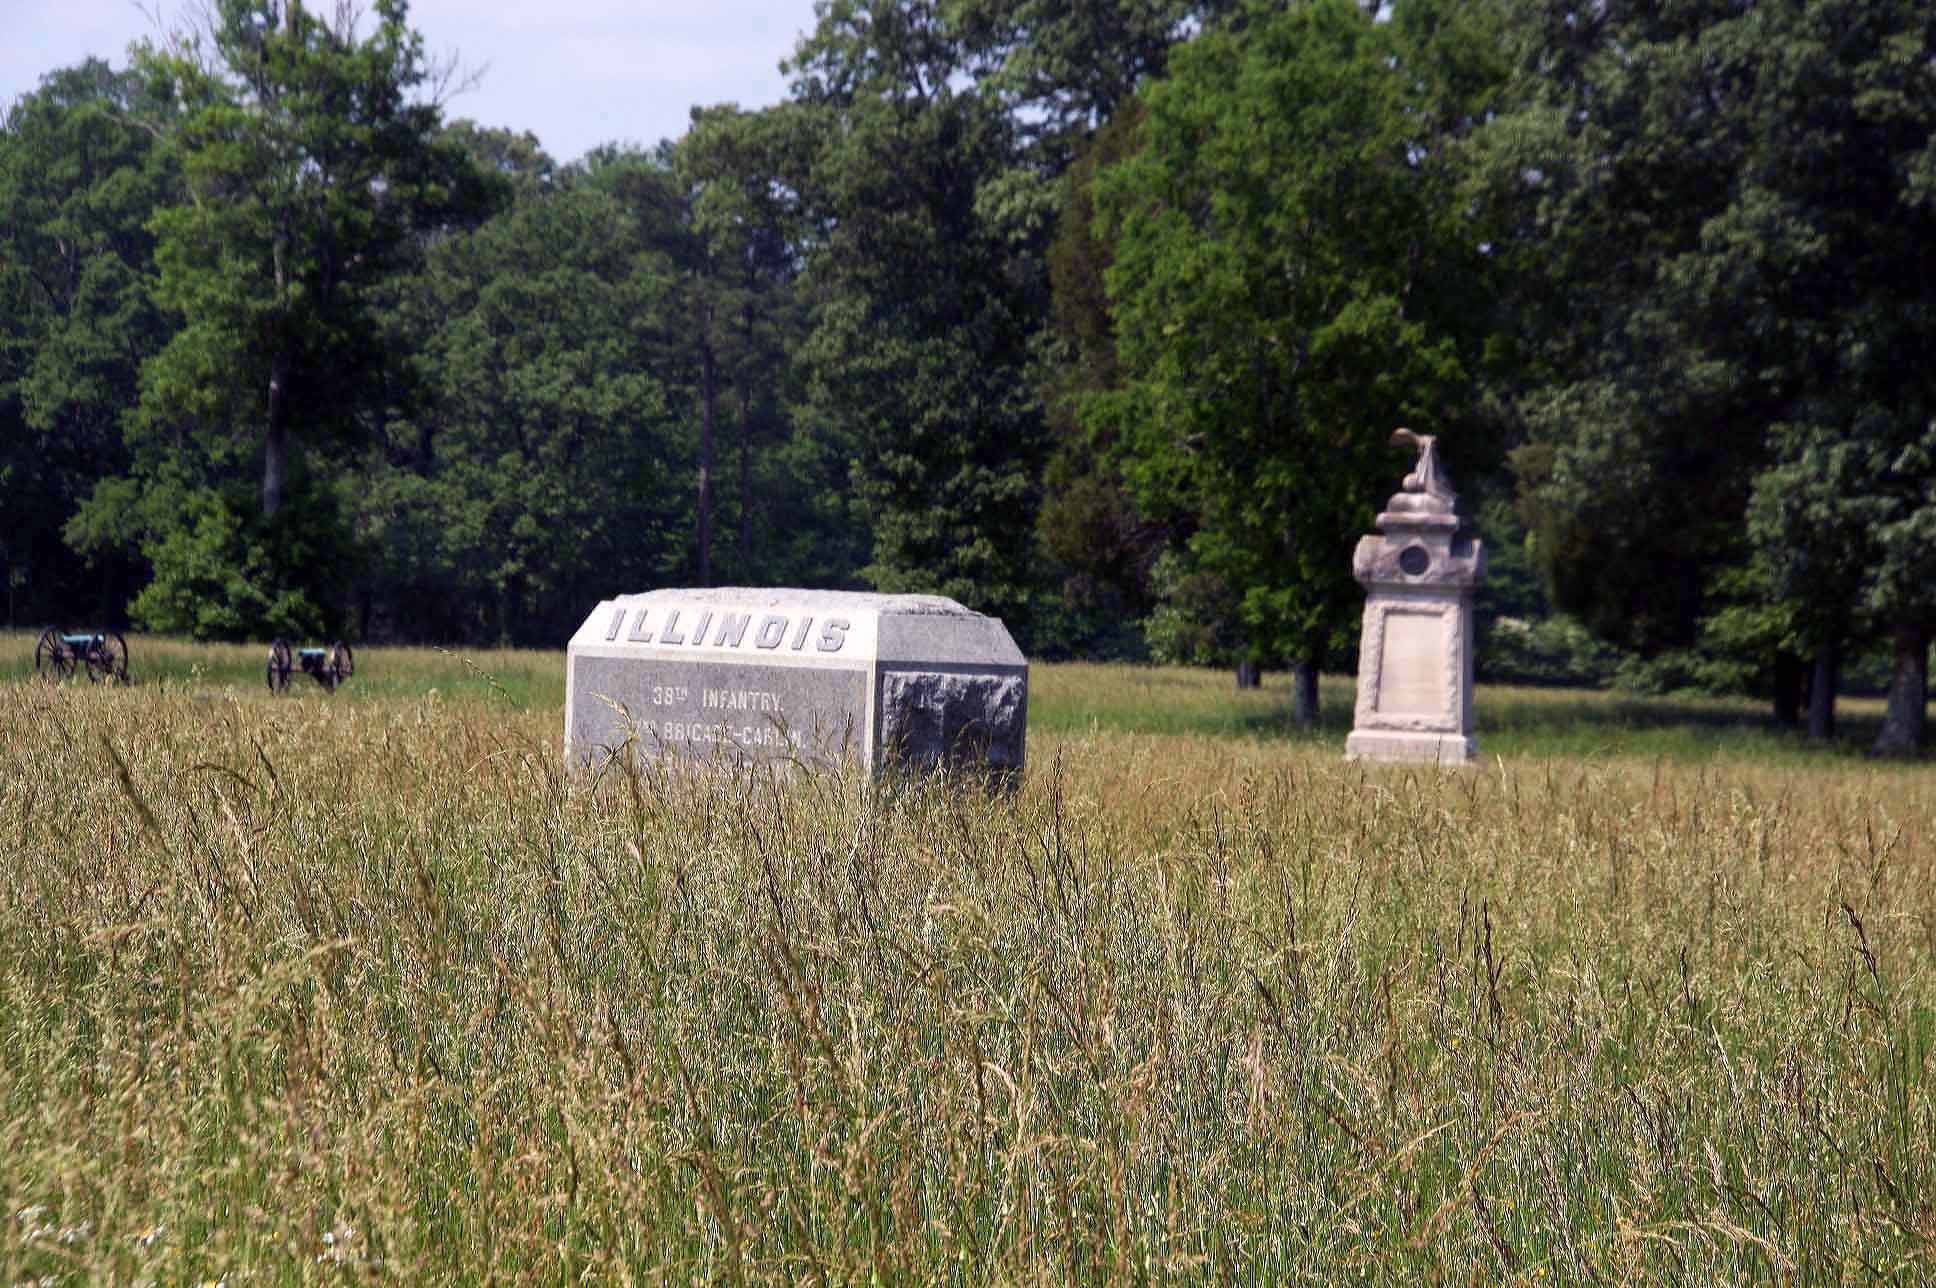 38th Illinois Infantry Regiment Monument, click photo to enlarge.